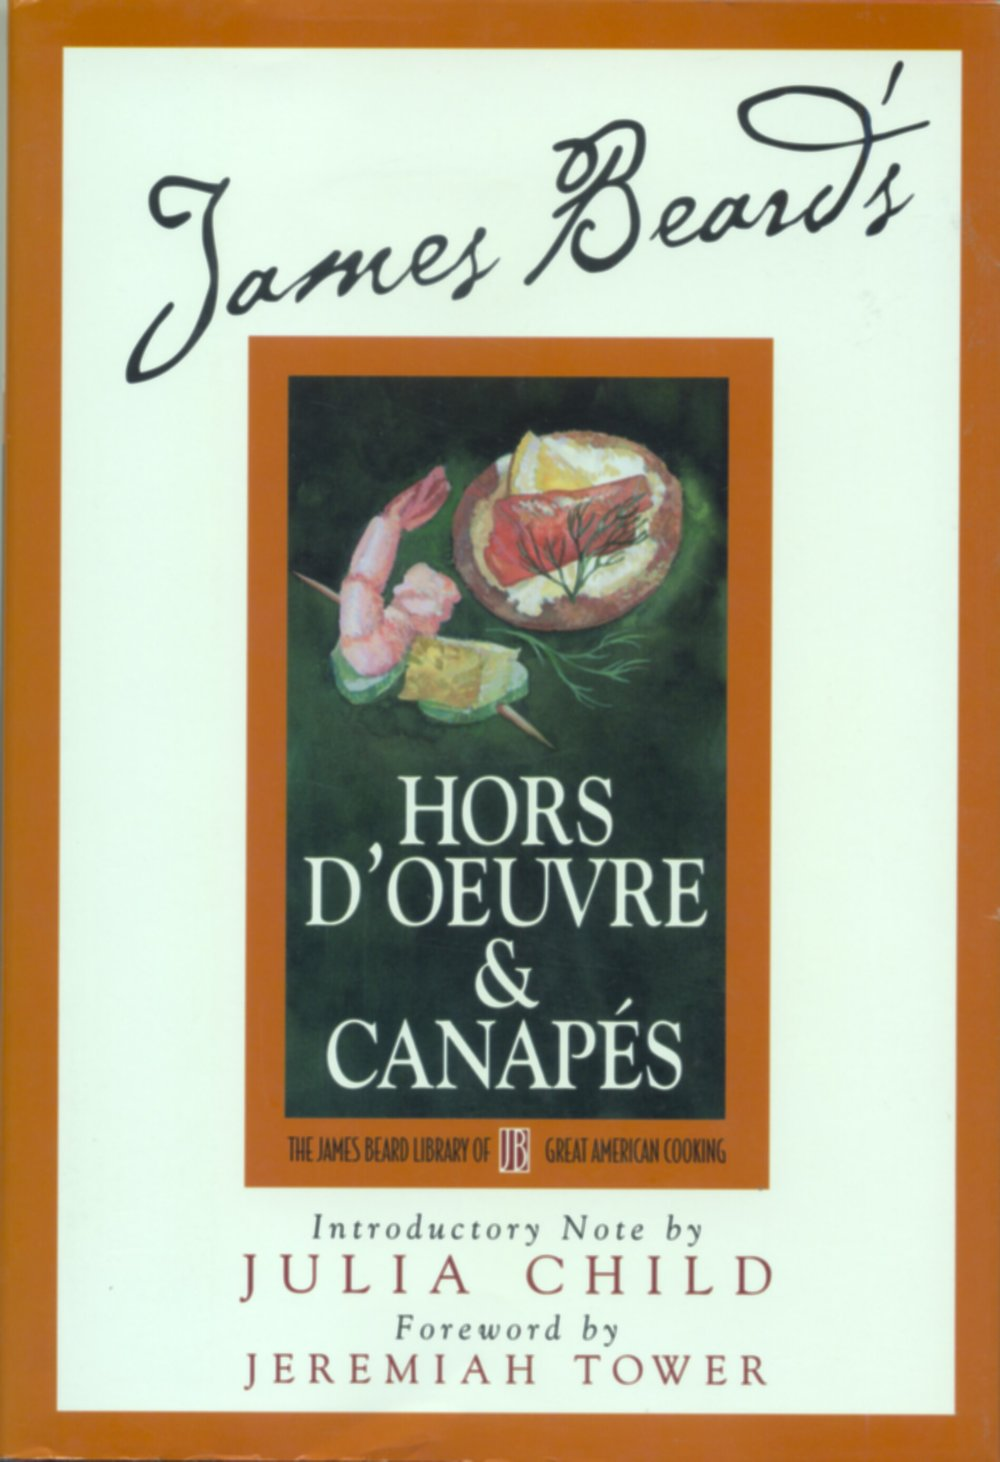 James Beard's Hors D'Oeuvre & Canapes ...first published in 1940, revised edition published by Reed College, Running Press in 1999, 1st printing ... notes by Julia Child